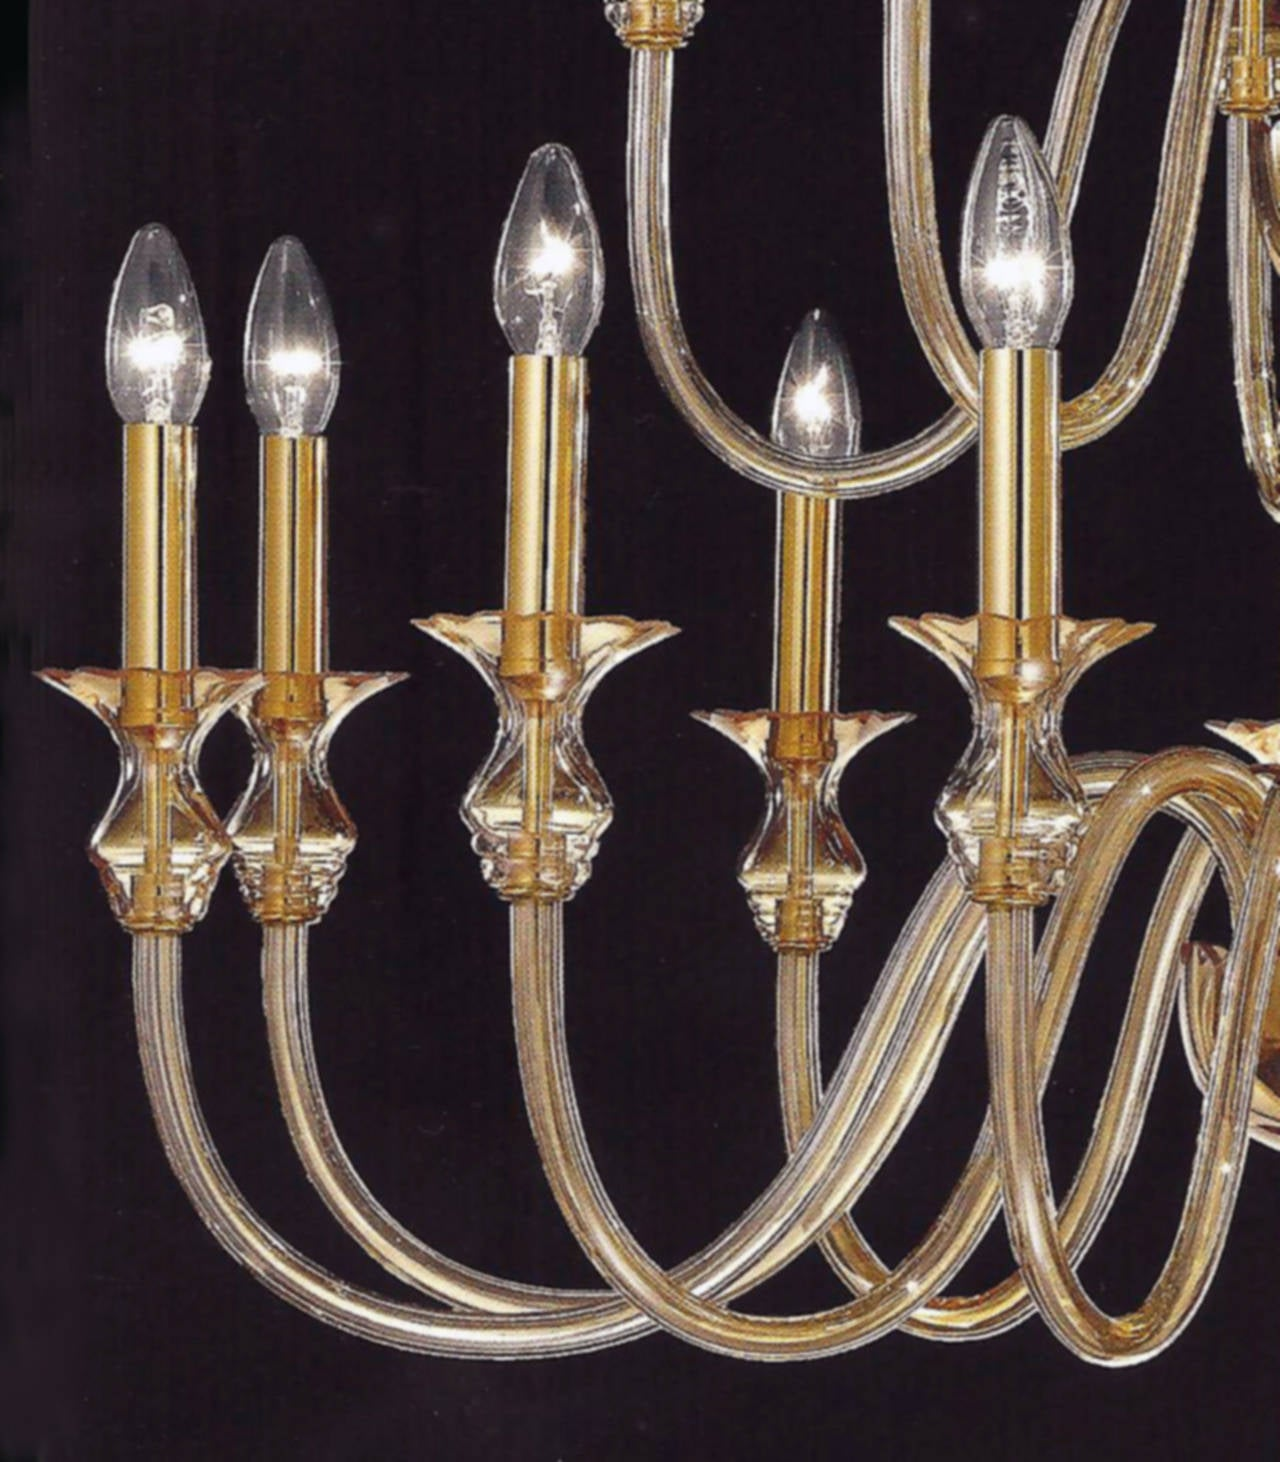 2 Mid-Century Modern Neoclassical Murano /Venetian Glass Double Tier Chandeliers For Sale 1